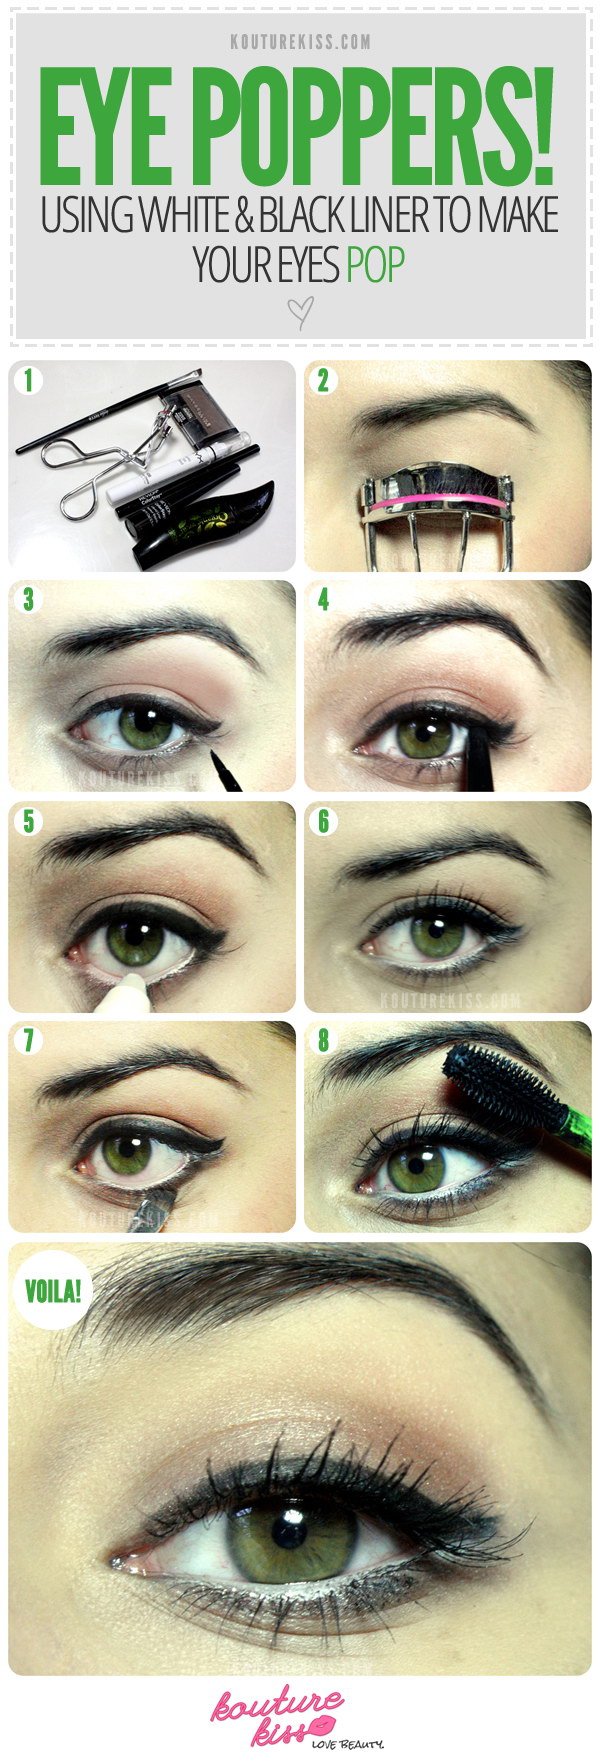 Eye Poppers! Using White & Black Liner To Make Your Eyes Pop.